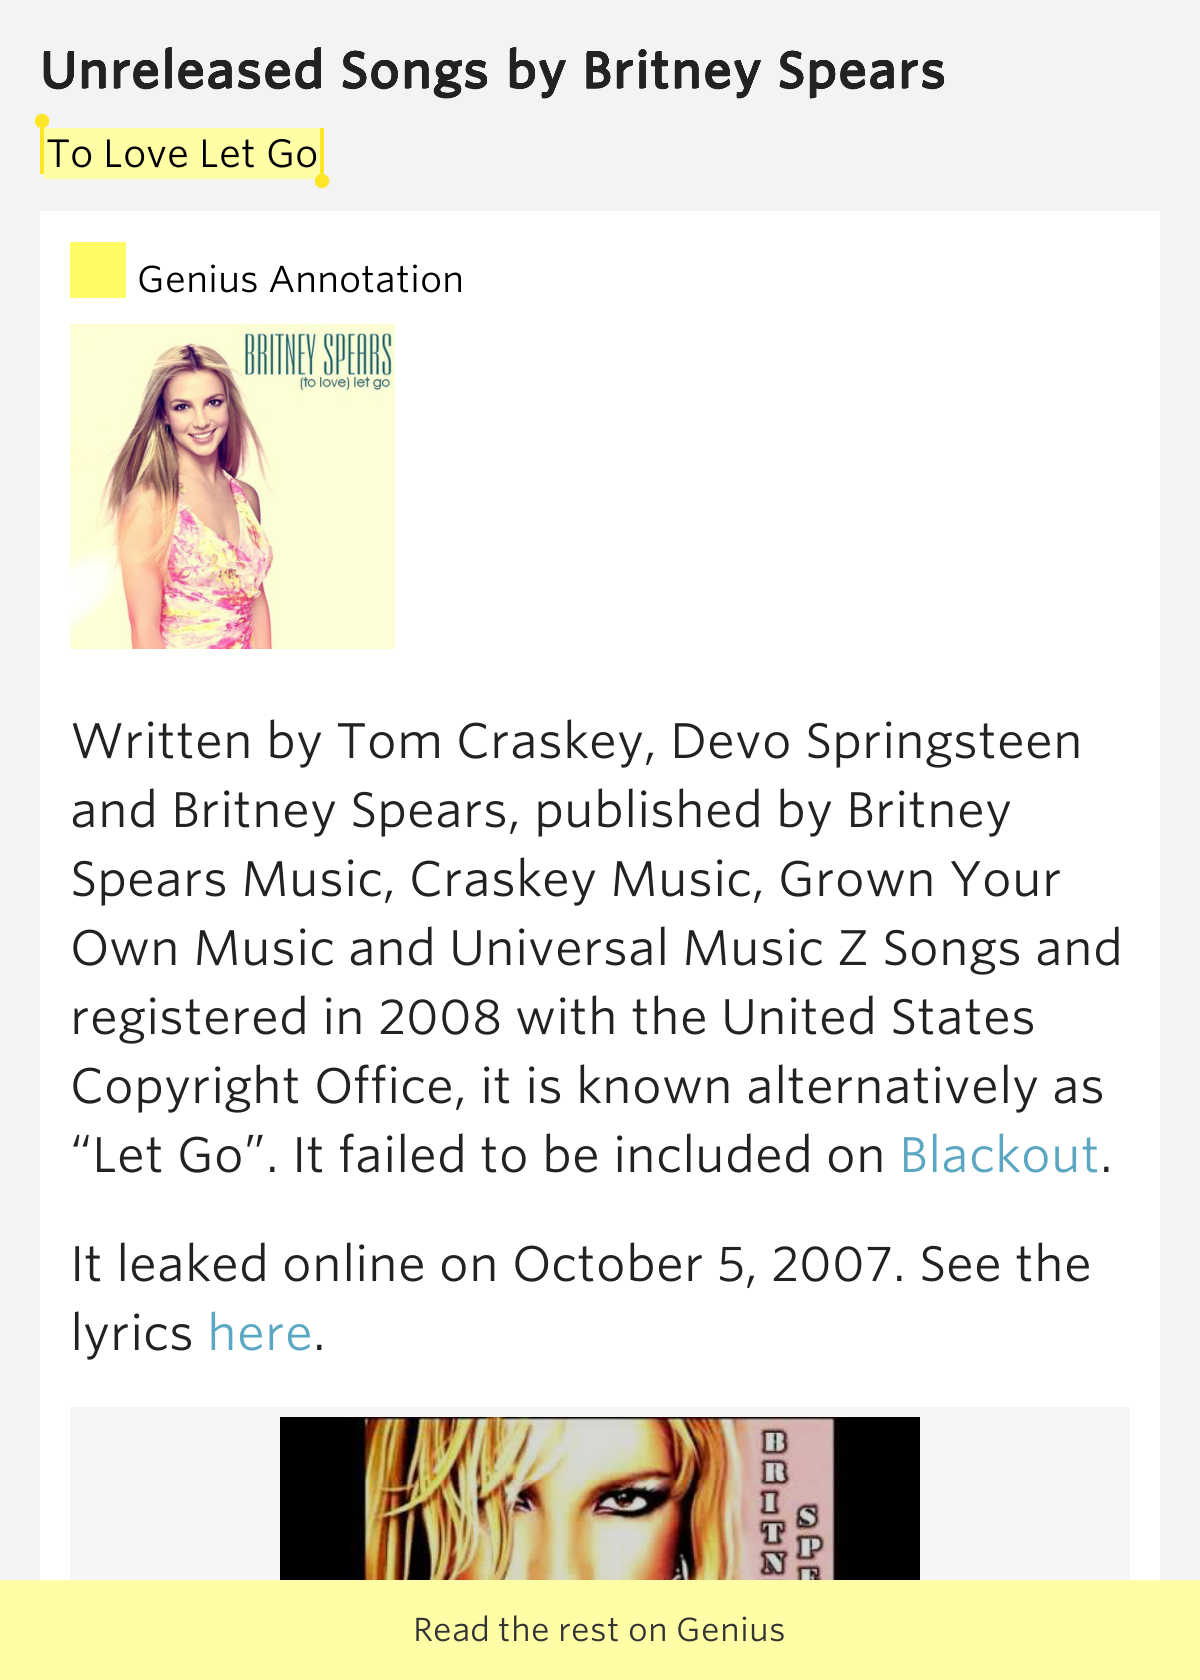 To Love Let Go – Unreleased Songs by Britney Spears